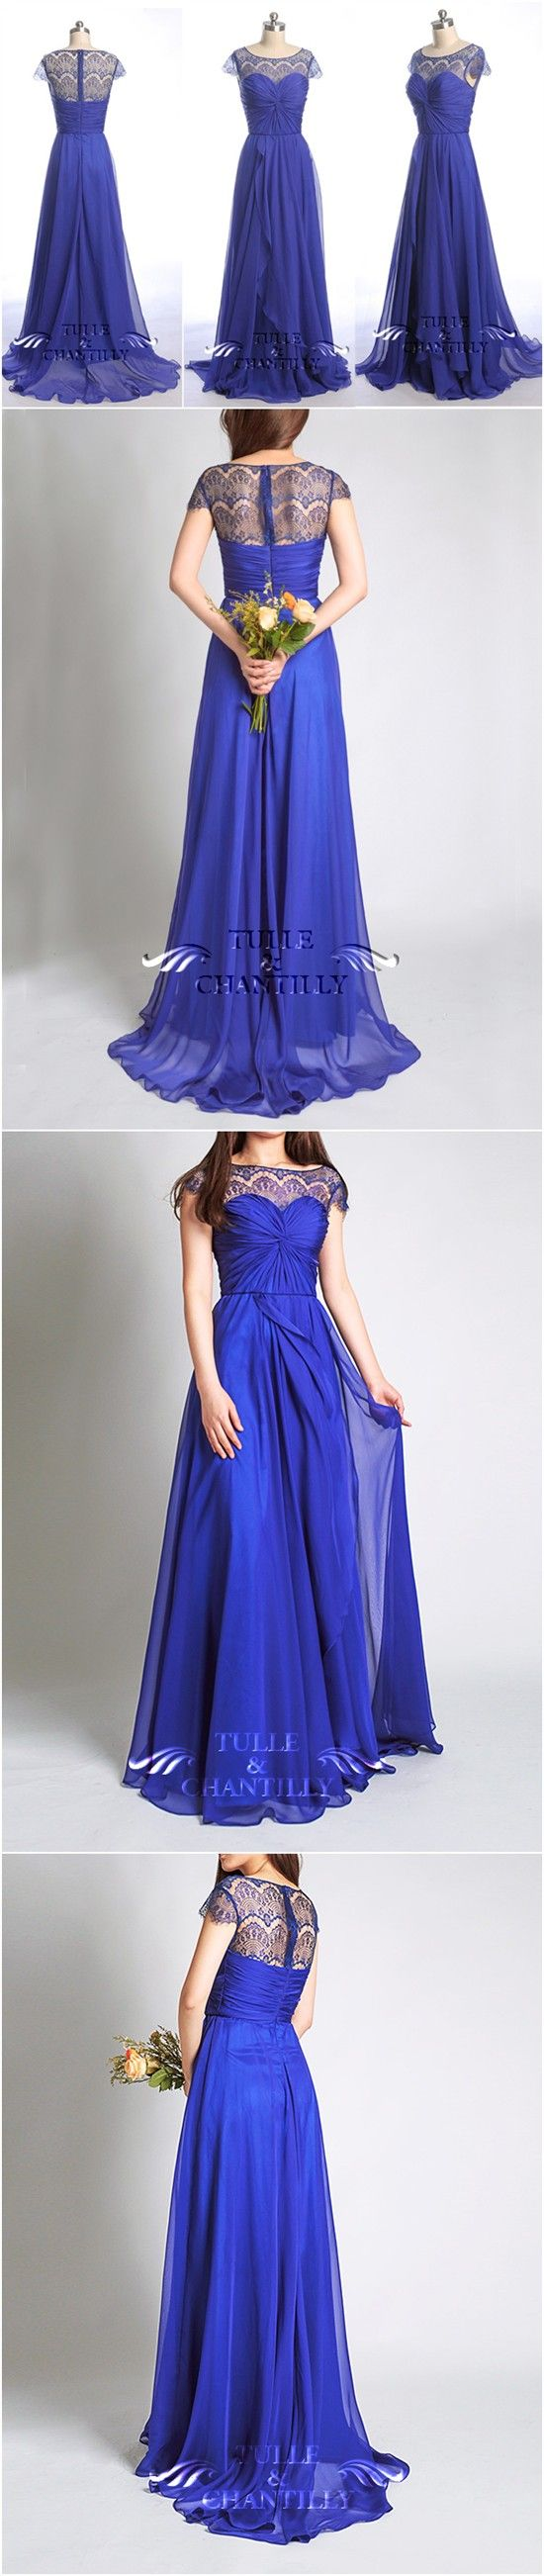 Purple Weding Colors - Bateau Neck Lace Cap Sleeves Concord Chiffon and Lace Bridesmaid Dresses - See more at: http://www.tulleandchantilly.com